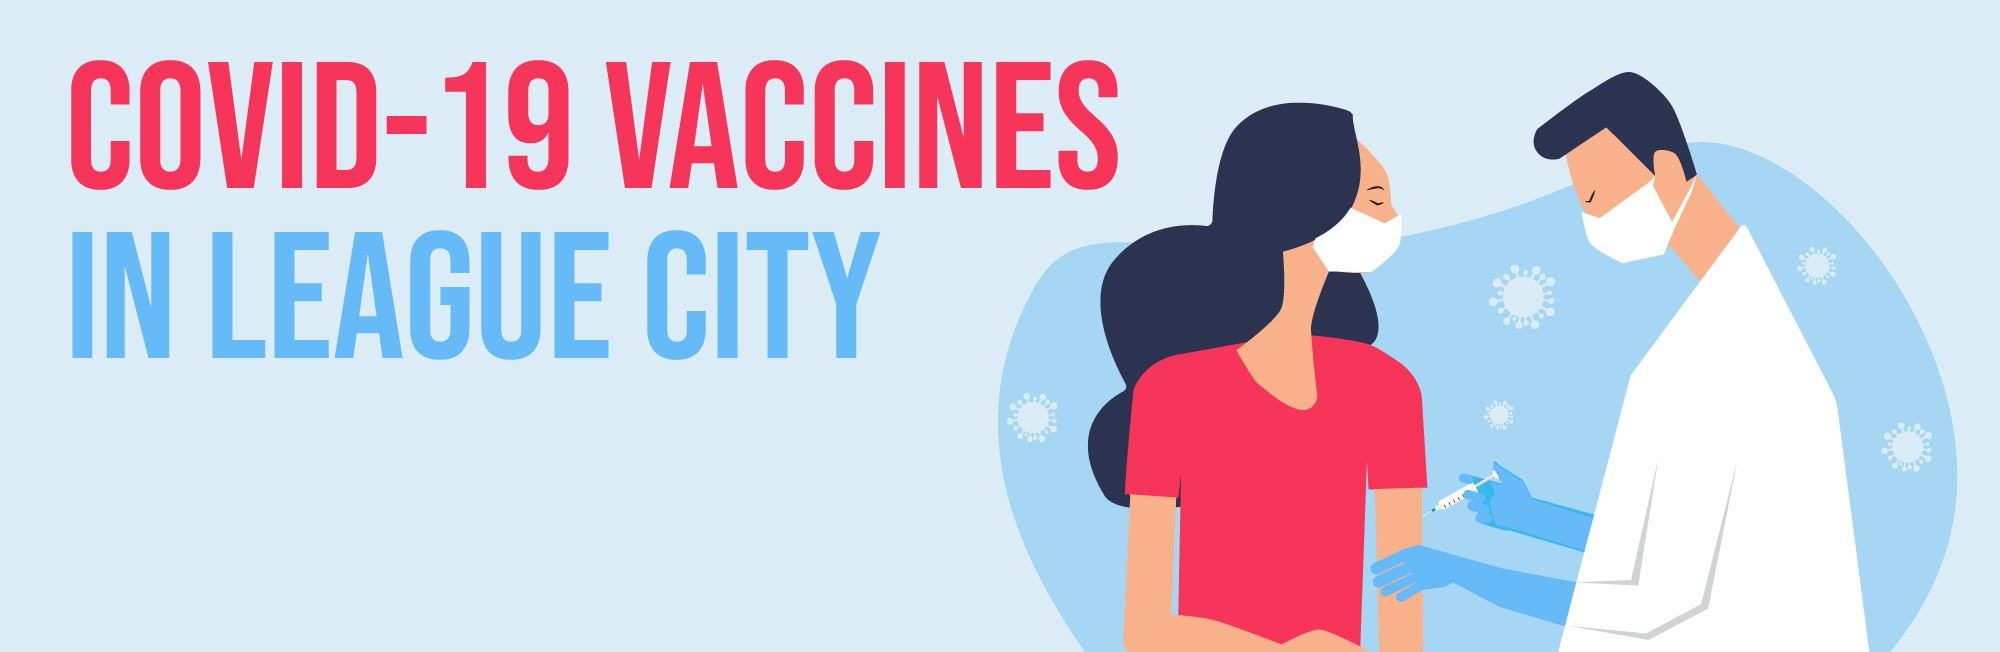 COVID-19 Vaccines in League City